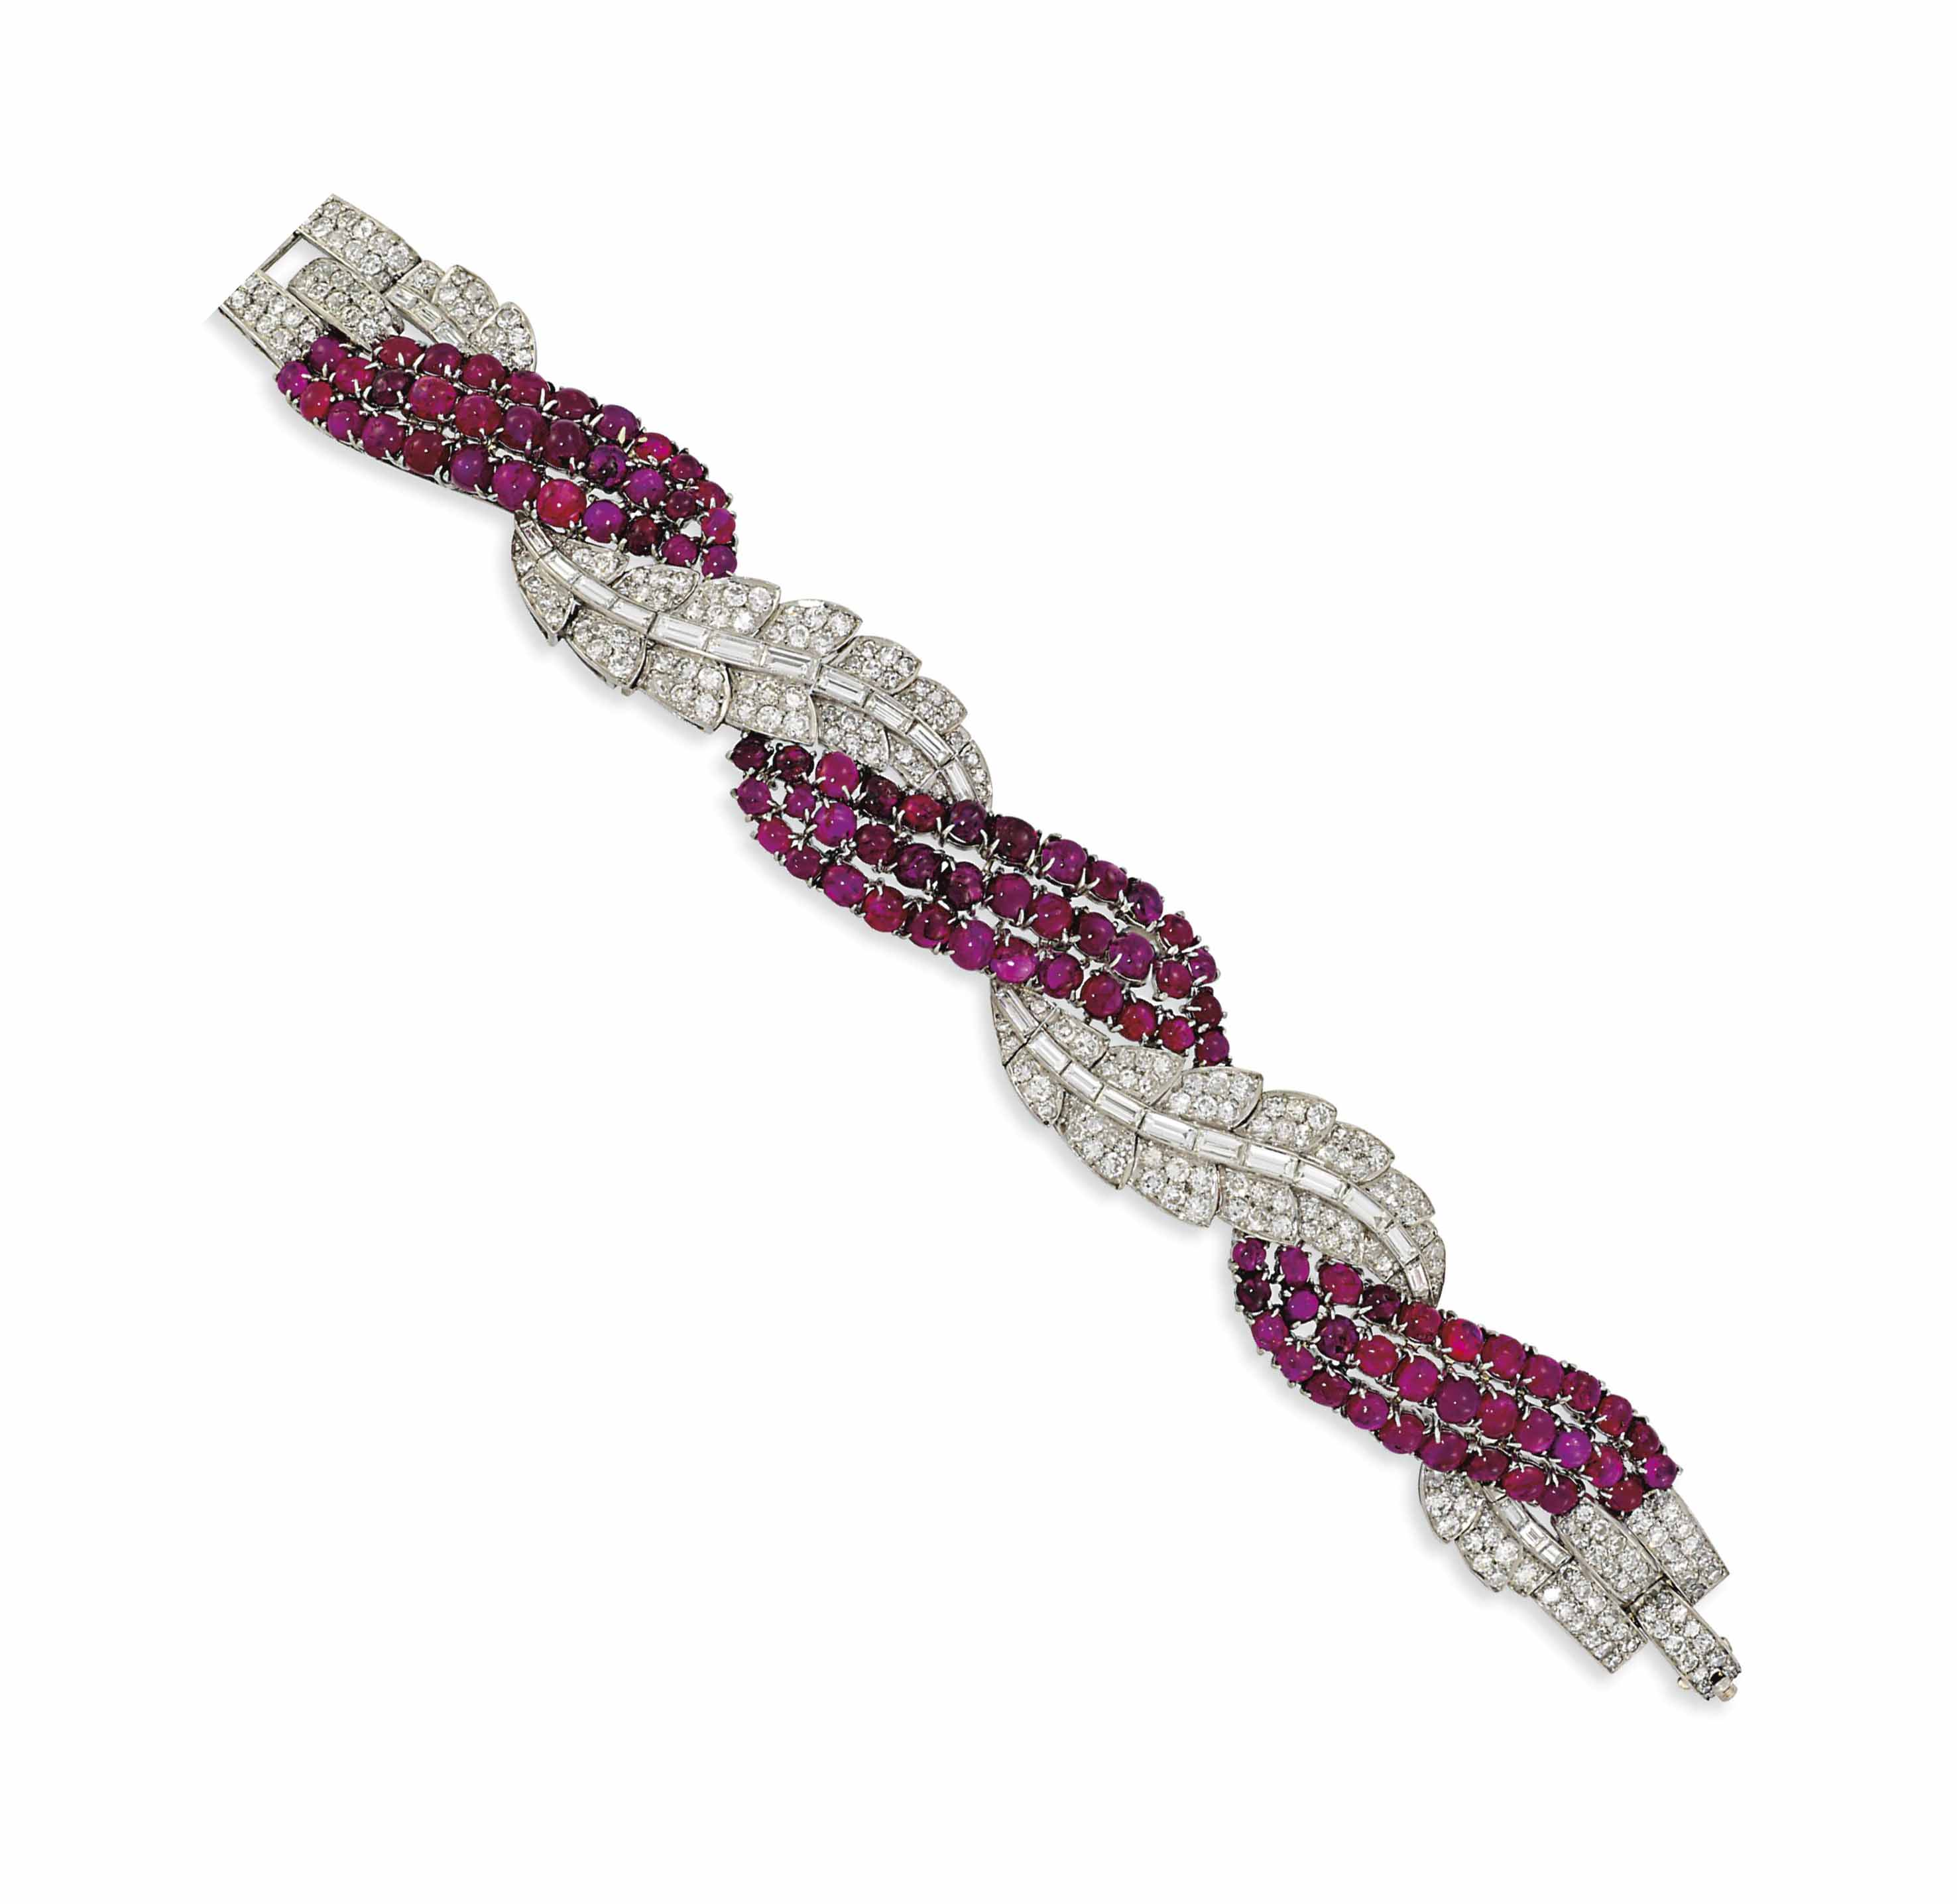 A RUBY AND DIAMOND BRACELET, B